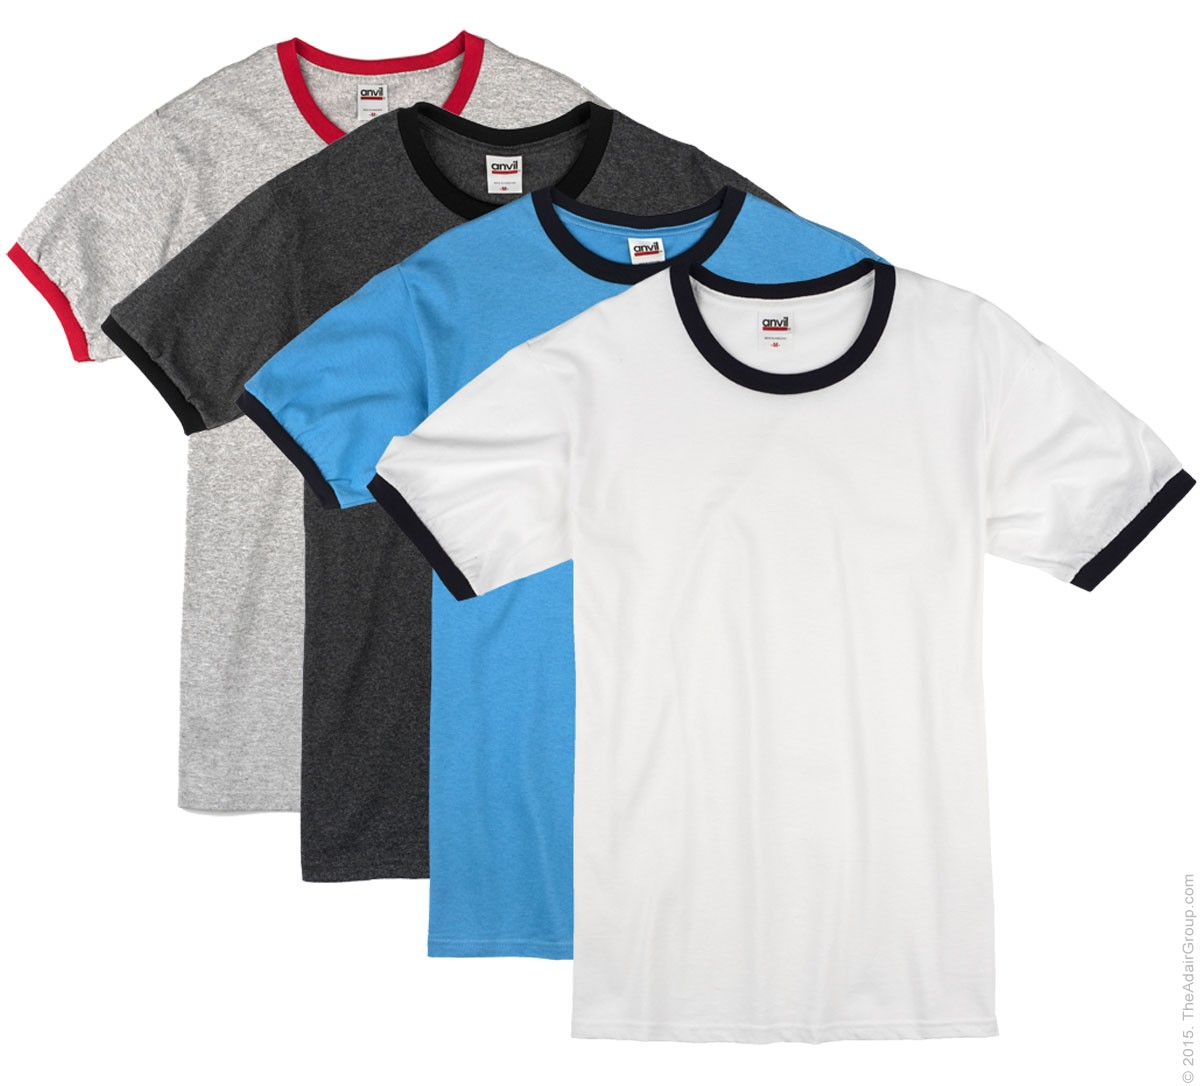 fe80b60011 Assorted Color Ringer T-Shirts   The Adair Group